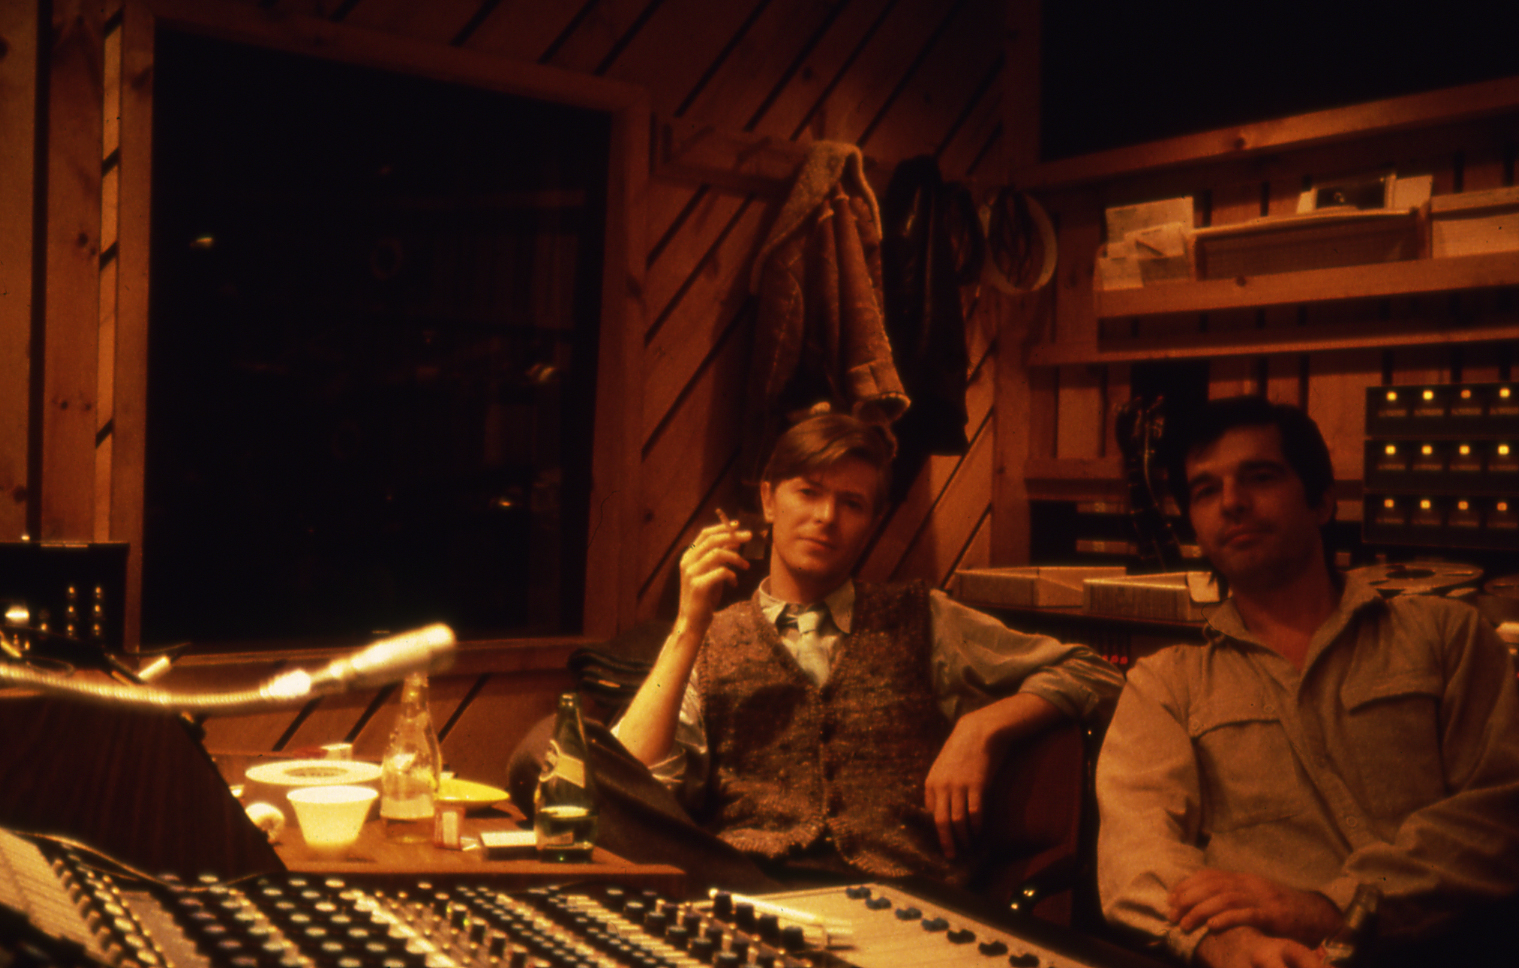 David Bowie and Tony Visconti recording the Scary Monsters album in The Power Station, NYC, 1979